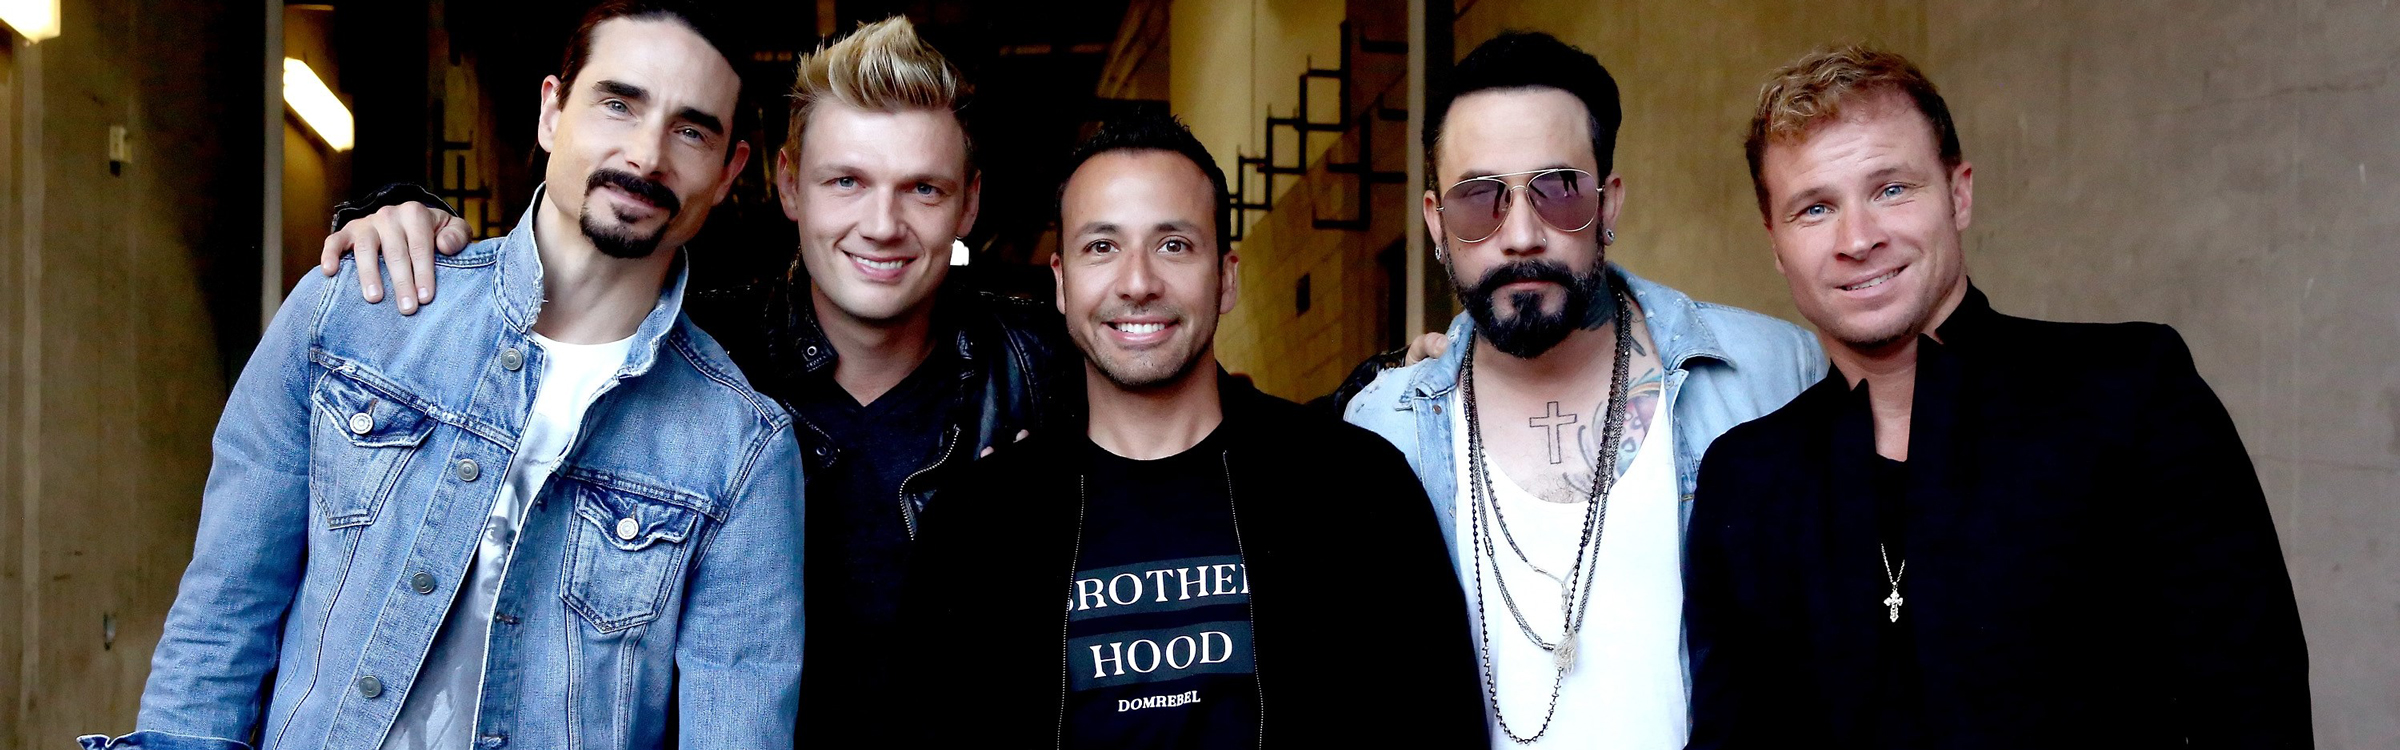 Backstreetboys2 header